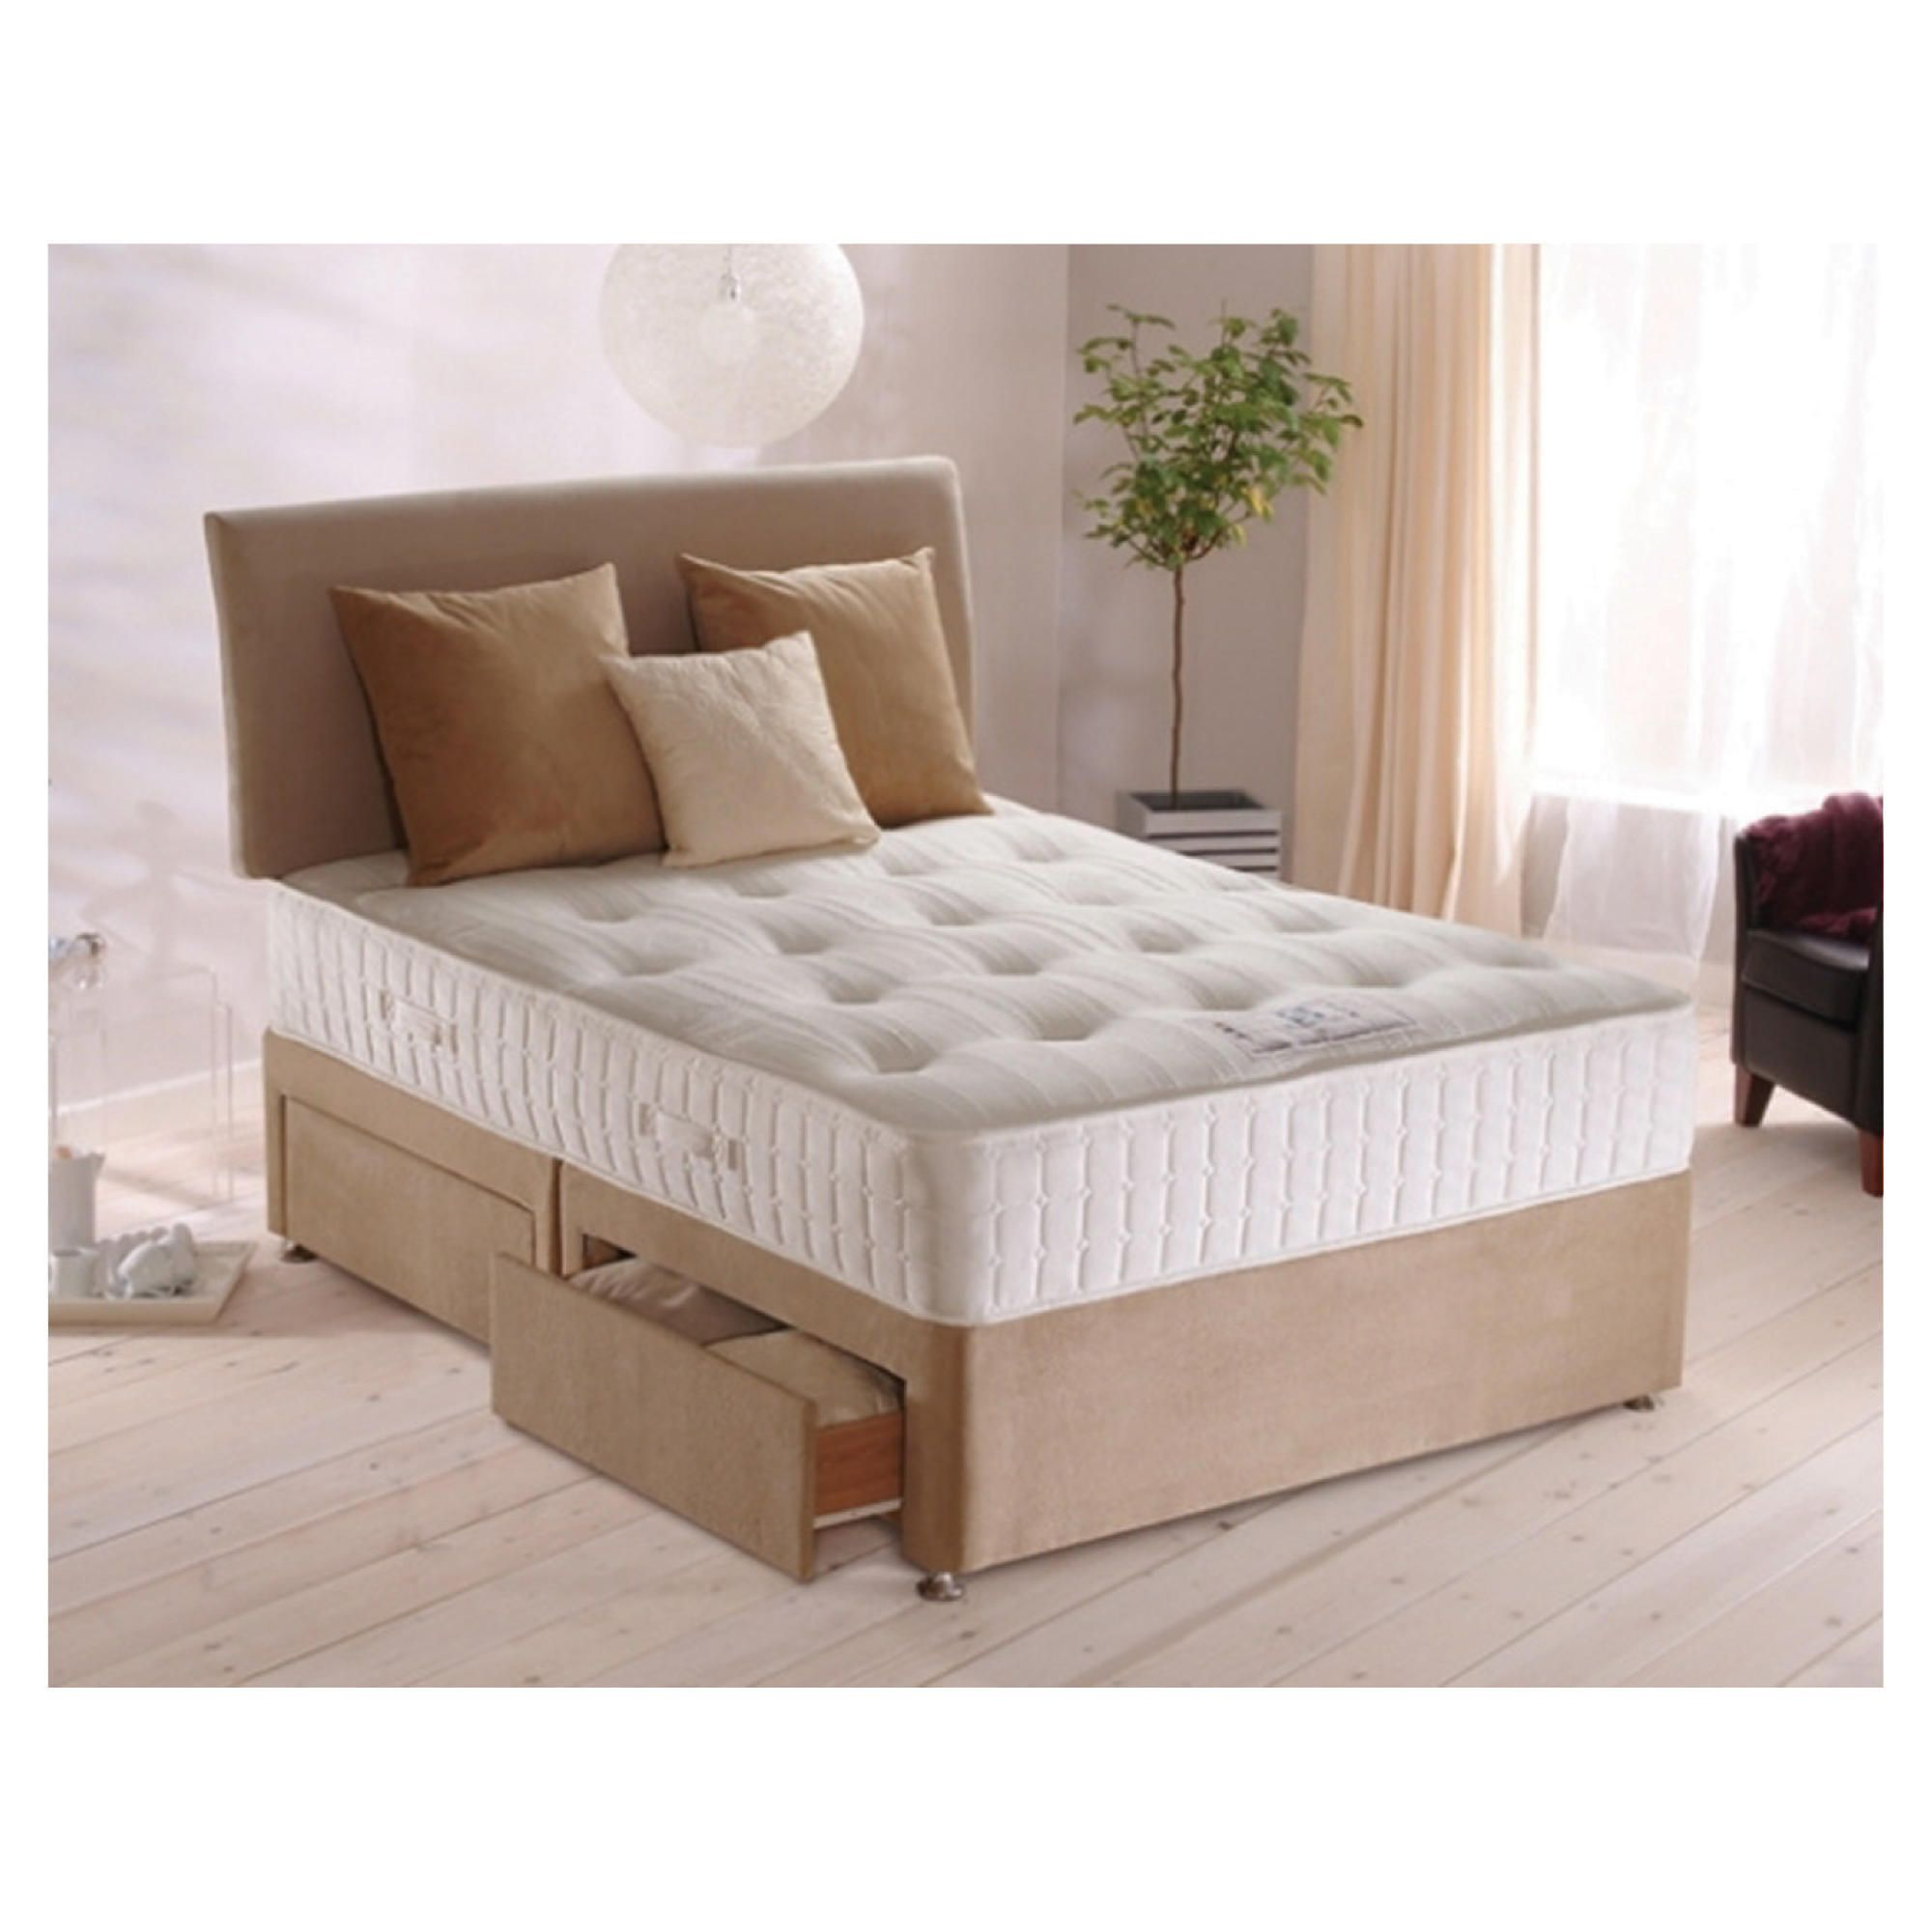 Sealy Purity Pocket Ortho Double 4 Drawer Divan Bed at Tesco Direct